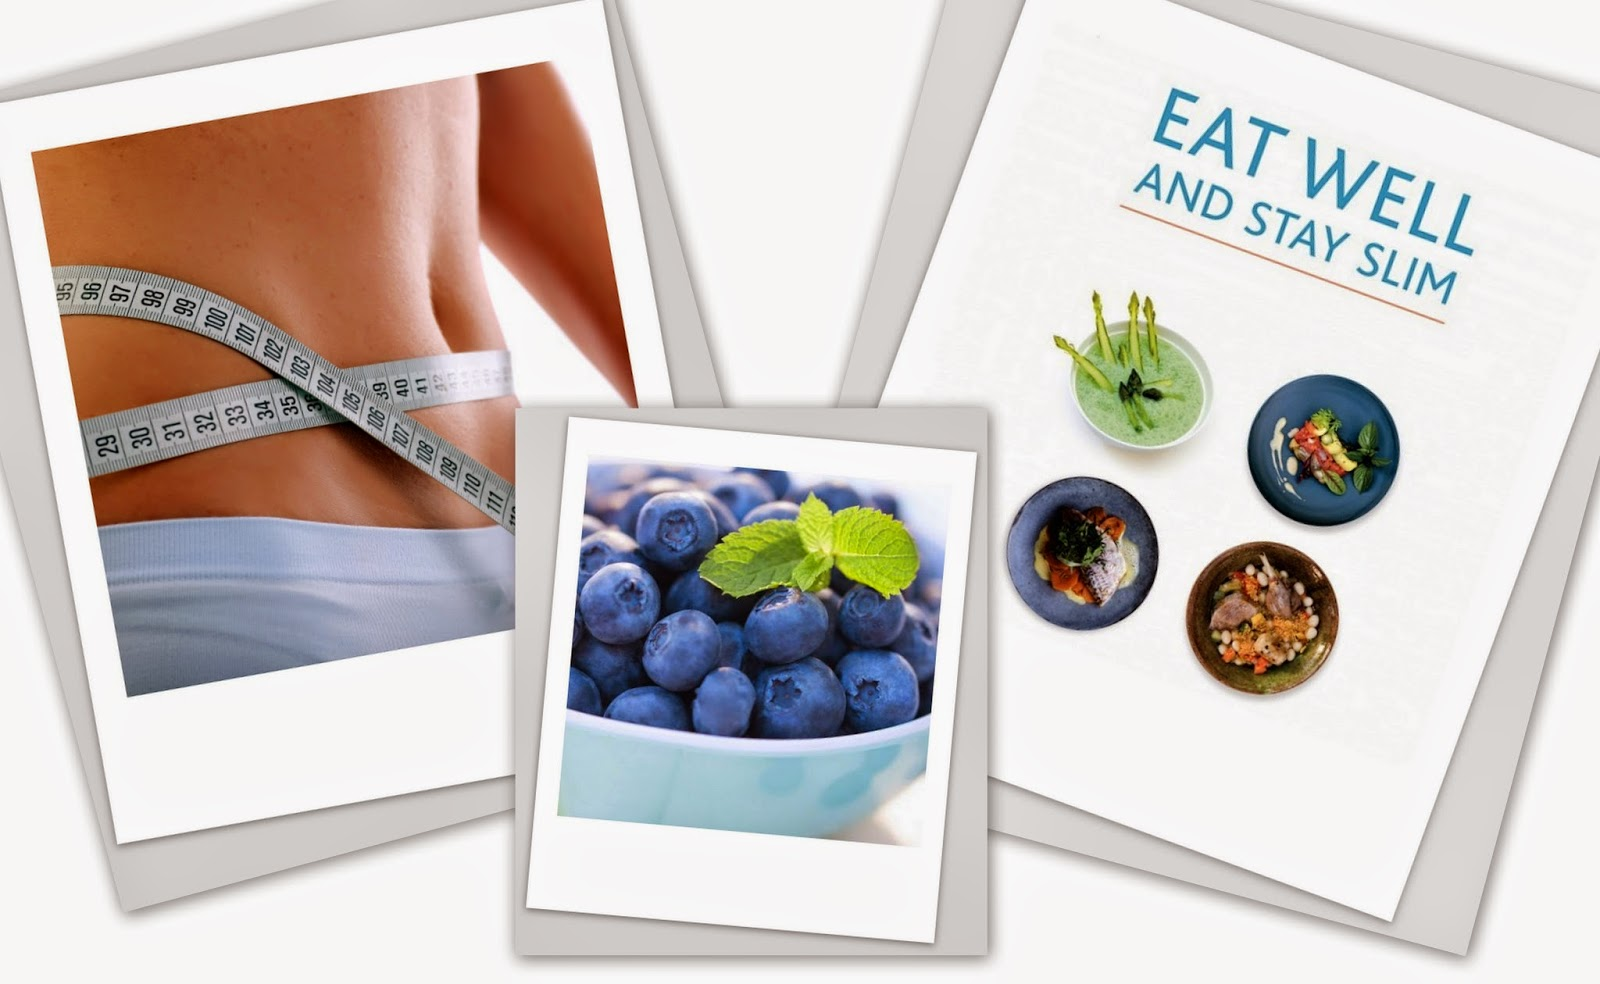 Blueberries help loose weight